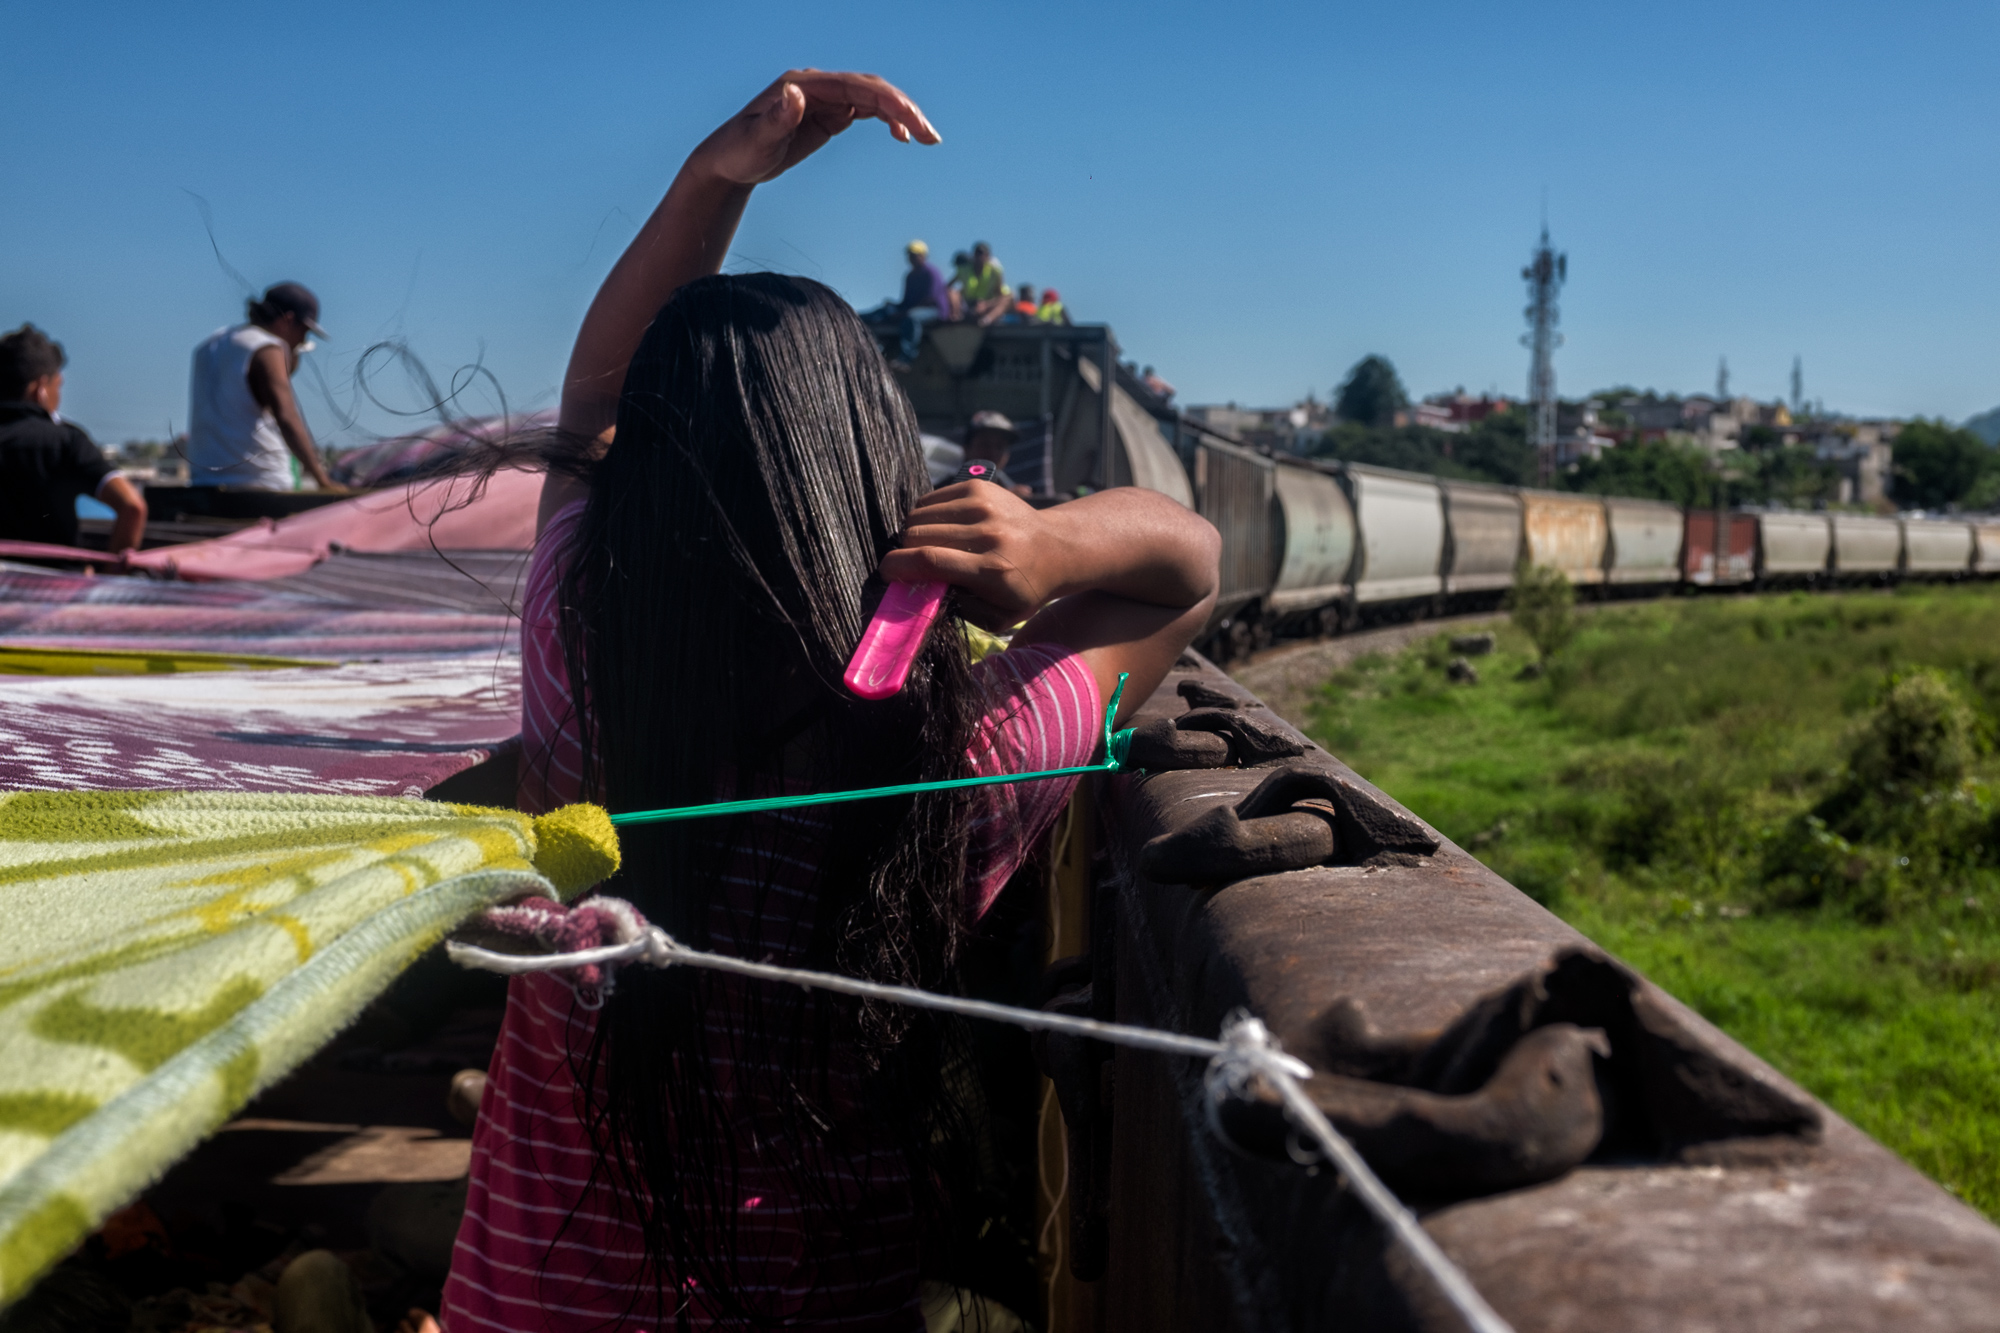 photo of a girl brushing her hair on a Mexican migrant caravan train